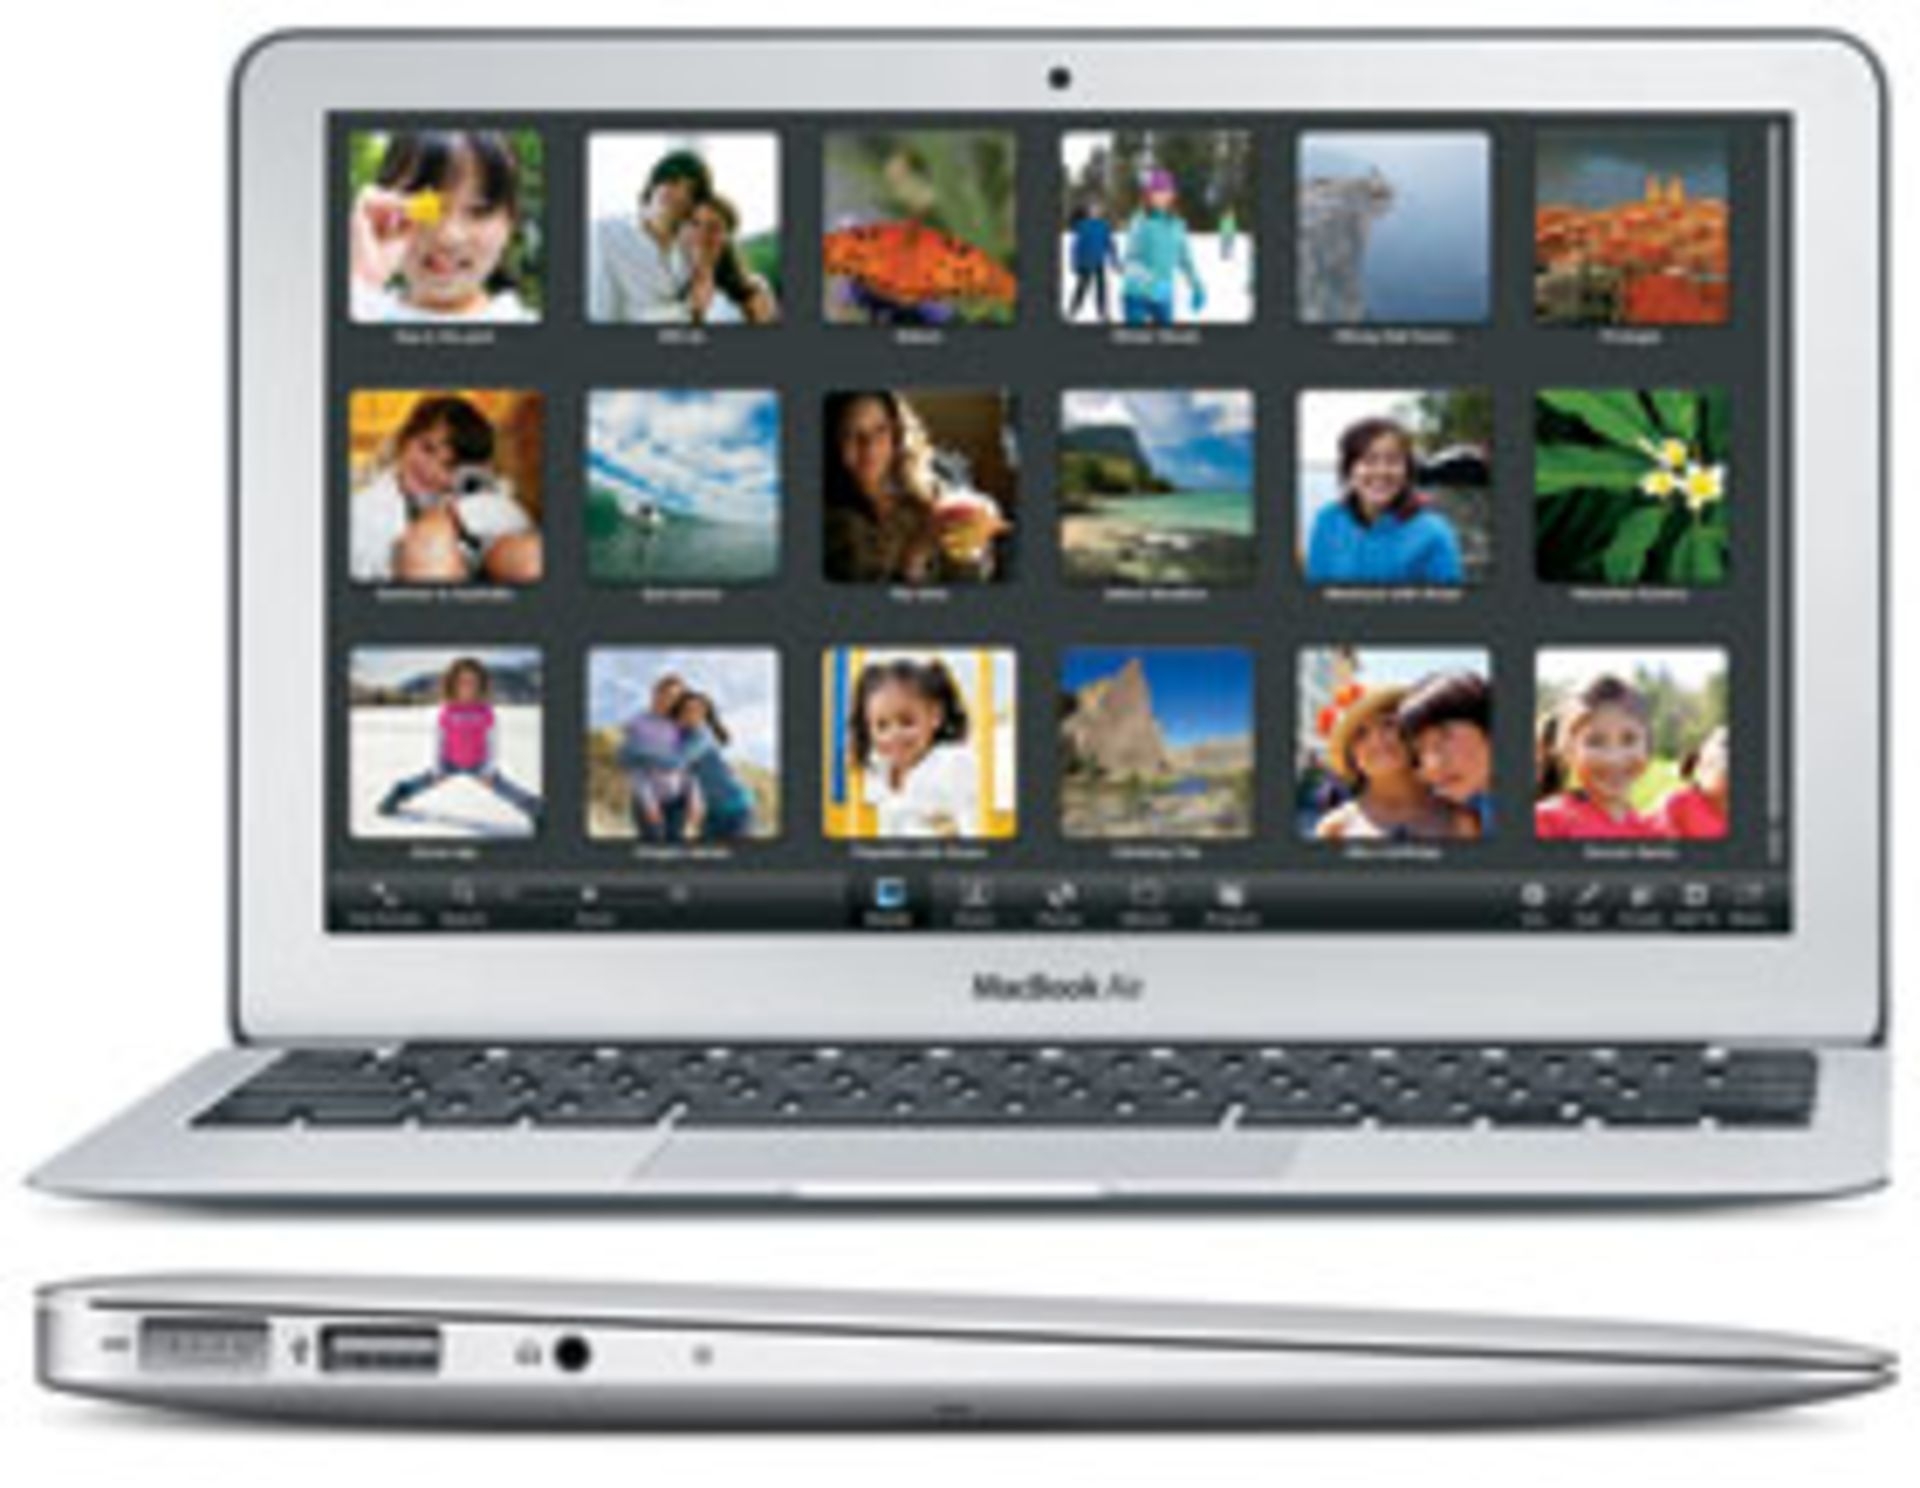 Lot 60011 - V Grade B Macbook Air 11.6 Inch Core 2 Duo - 64GB SSD - A1370 - Available Approx 7 Working Days